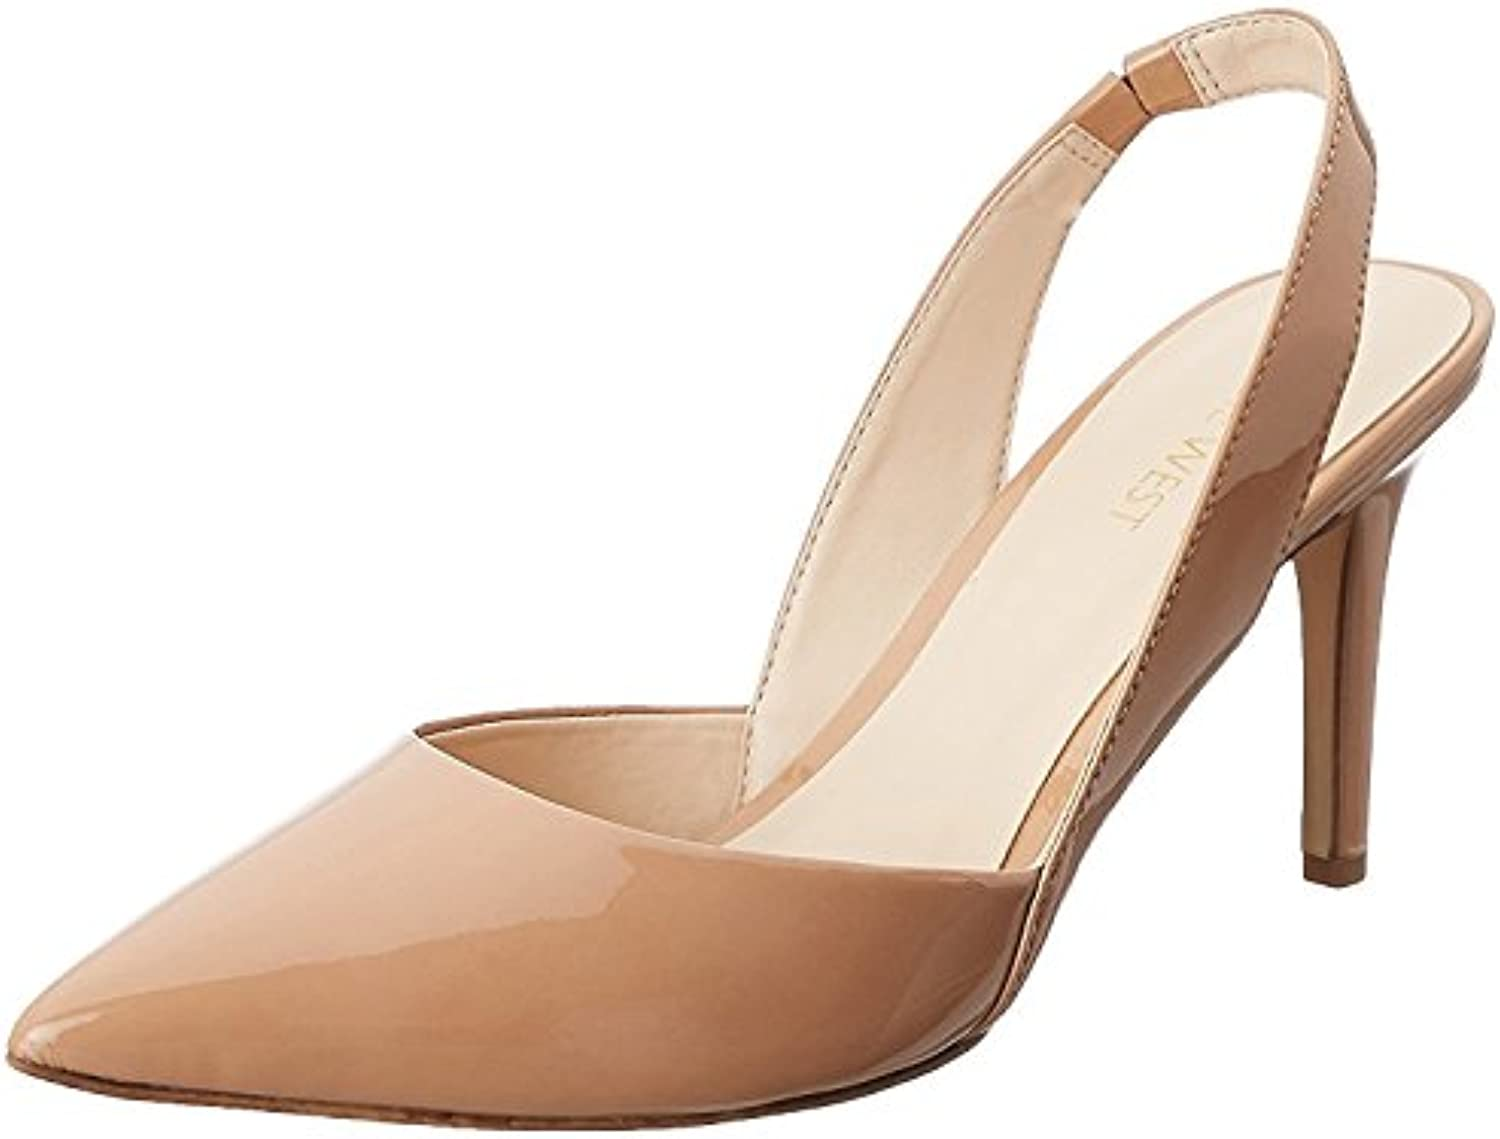 Nine West Women'S Rollover Synthetic Dress Pump, Natural Synthetic, 38.5 B(M) EU/6.5 B(M) UK